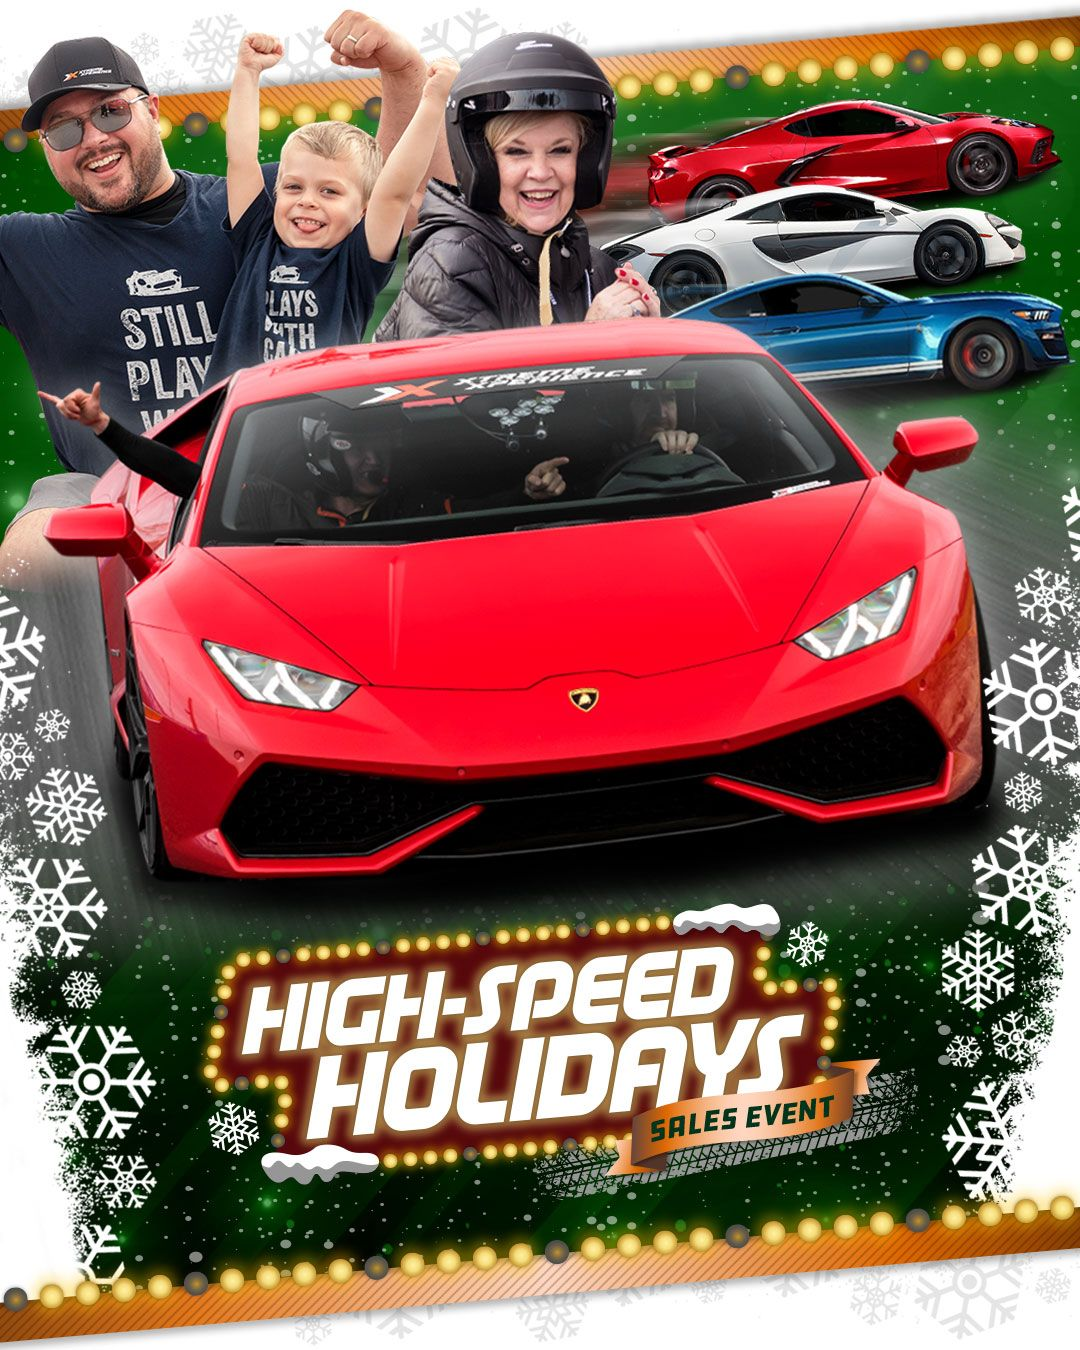 Last Minute Gift Supecar Xperiences Holiday Sales Supercar Driving Experience Xtreme Xperience